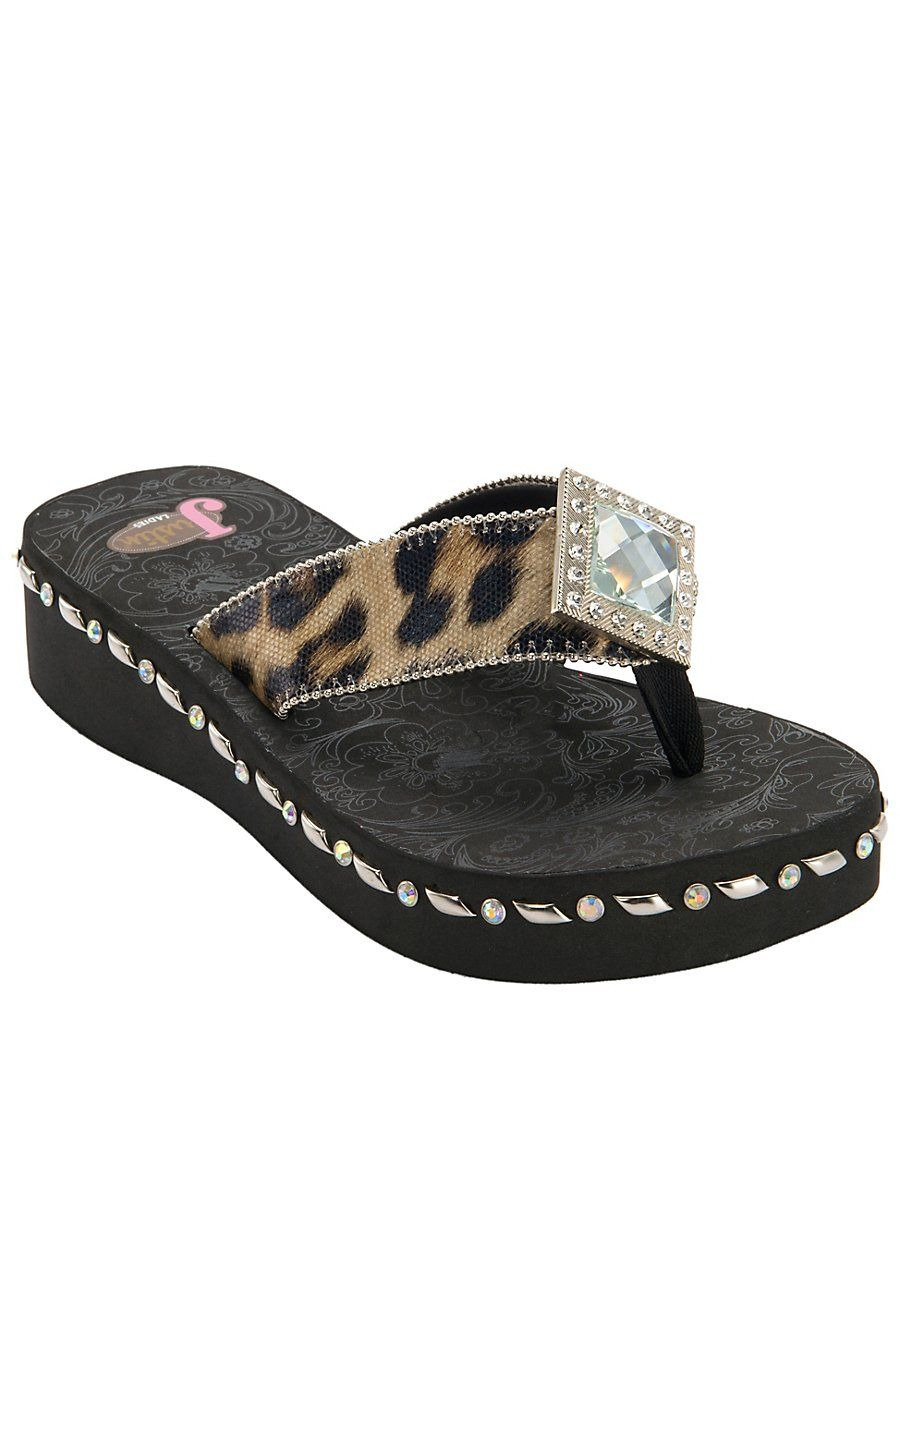 b957ae60b Justin® Samantha™ Women s Black Brown Leopard Print Jeweled Flip-Flop